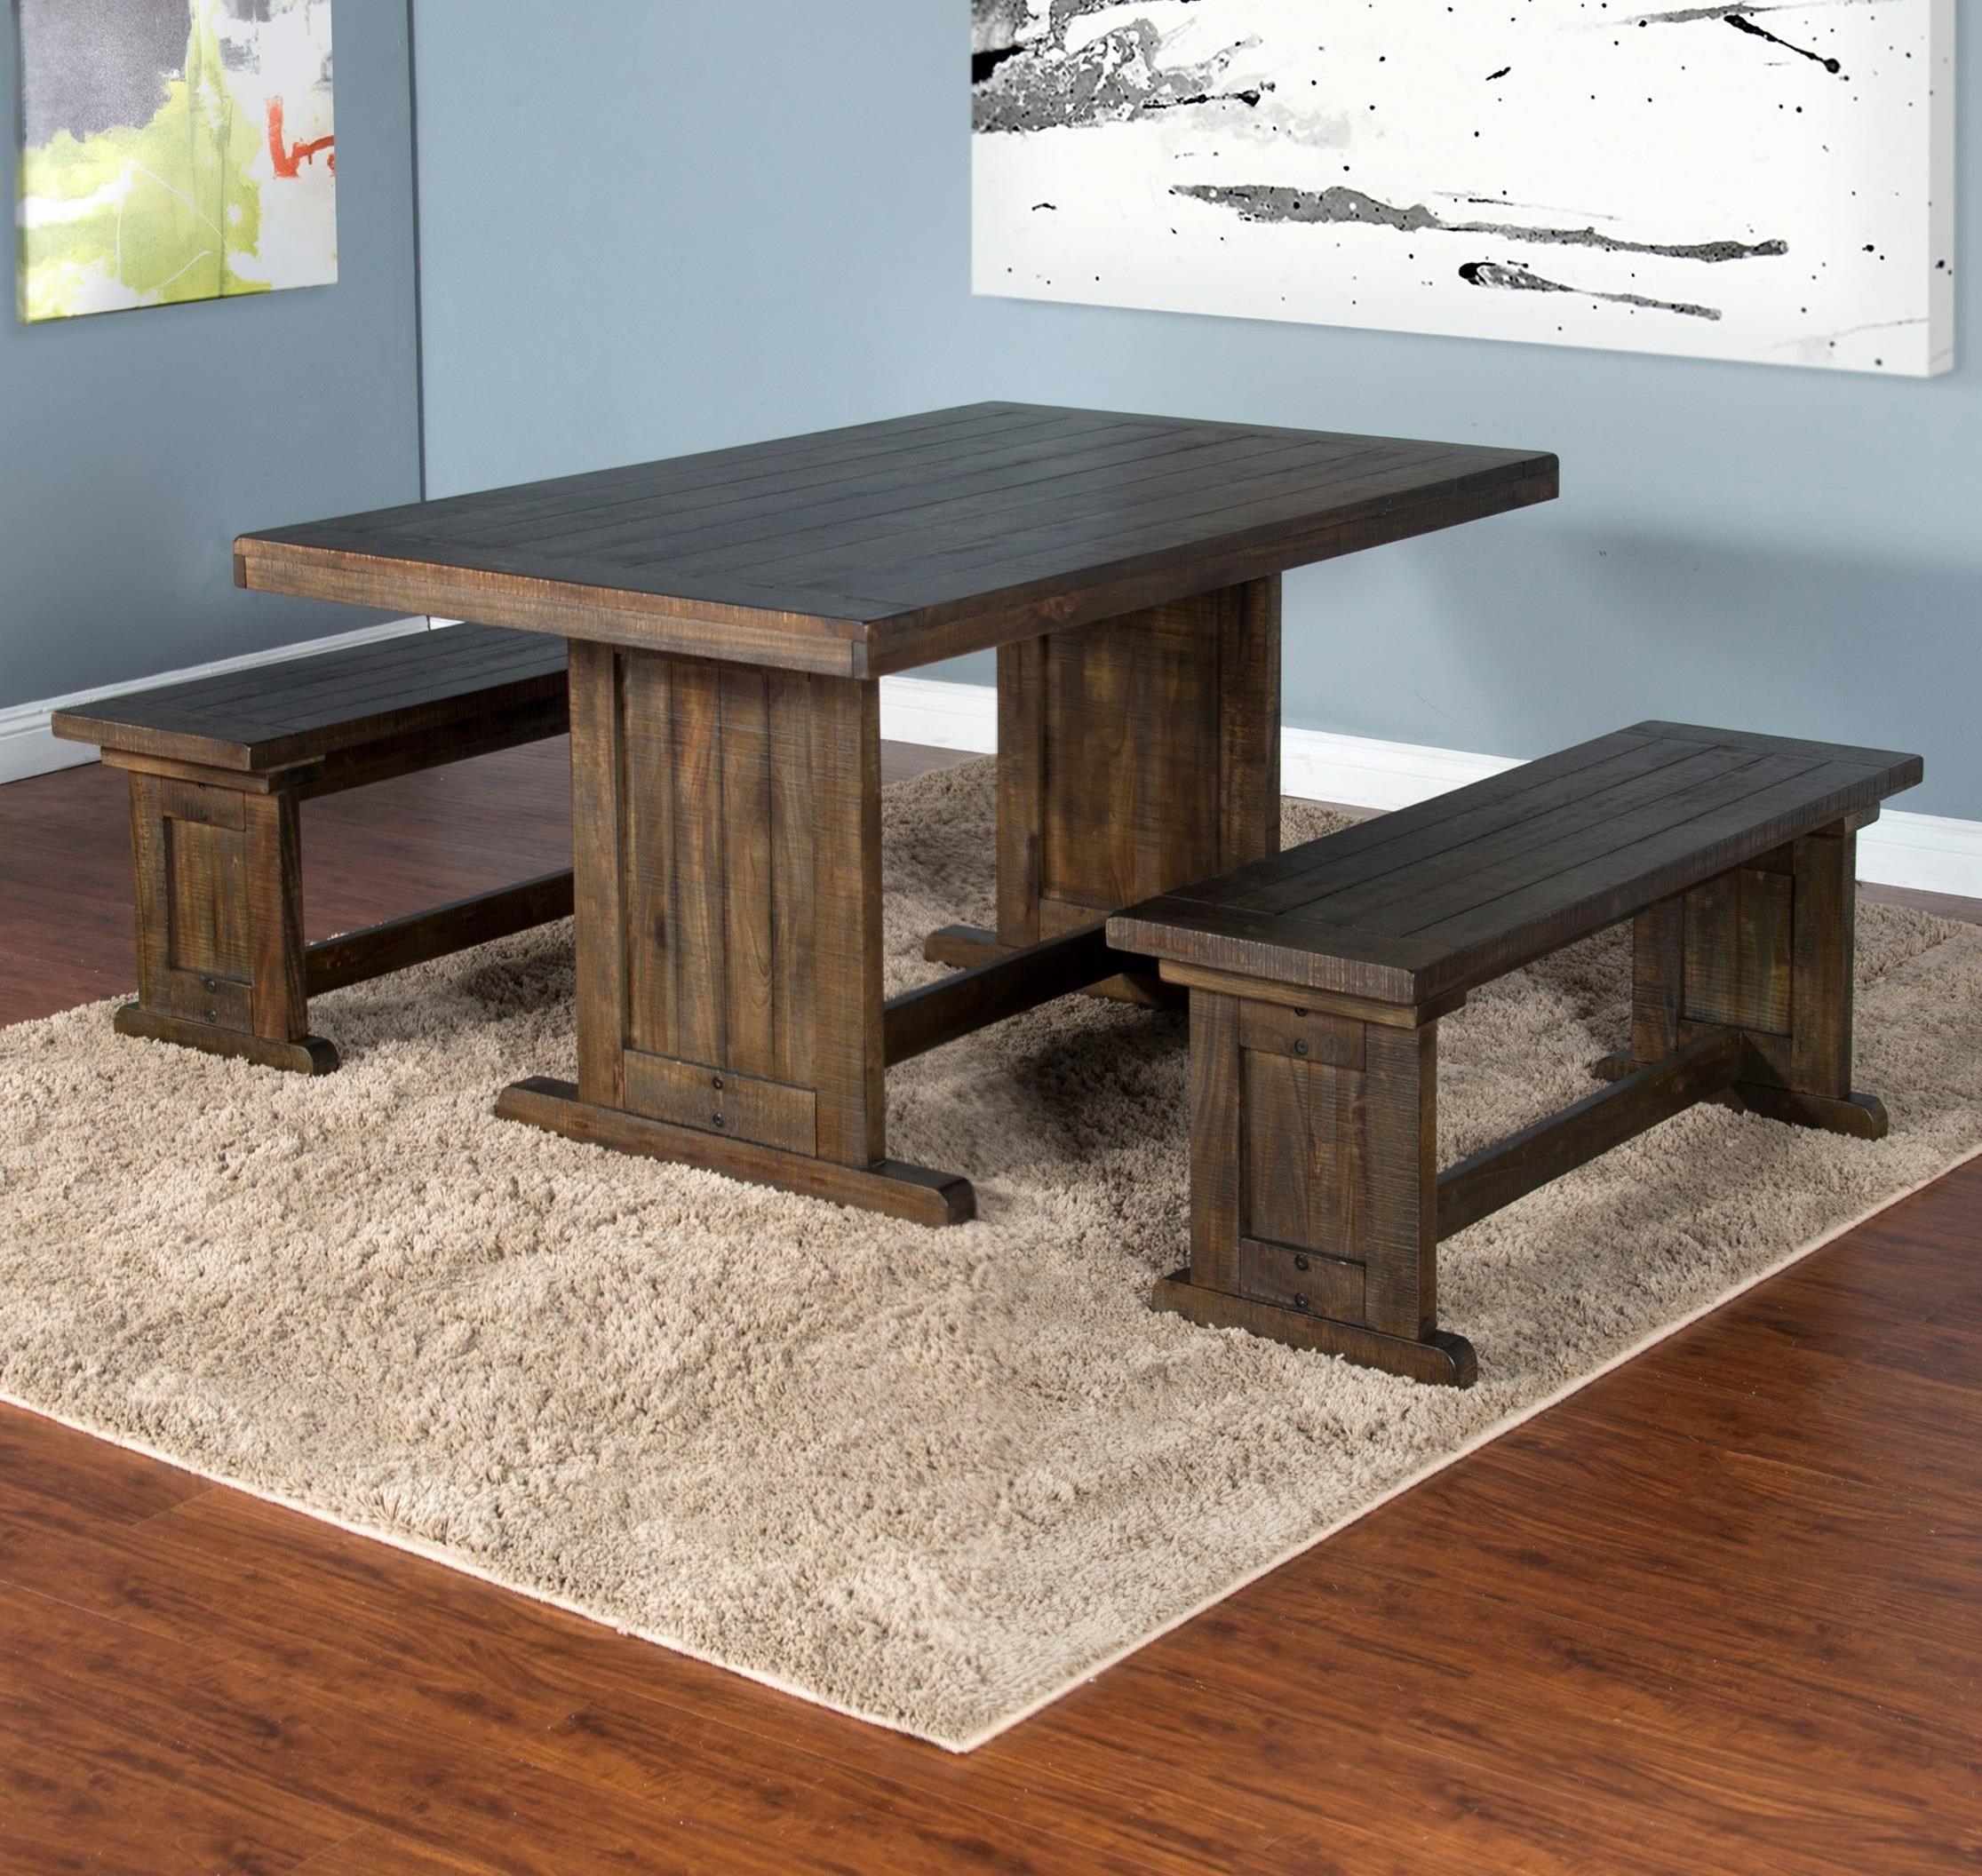 Homestead Table with 2 Benches by Sunny Designs at Sparks HomeStore